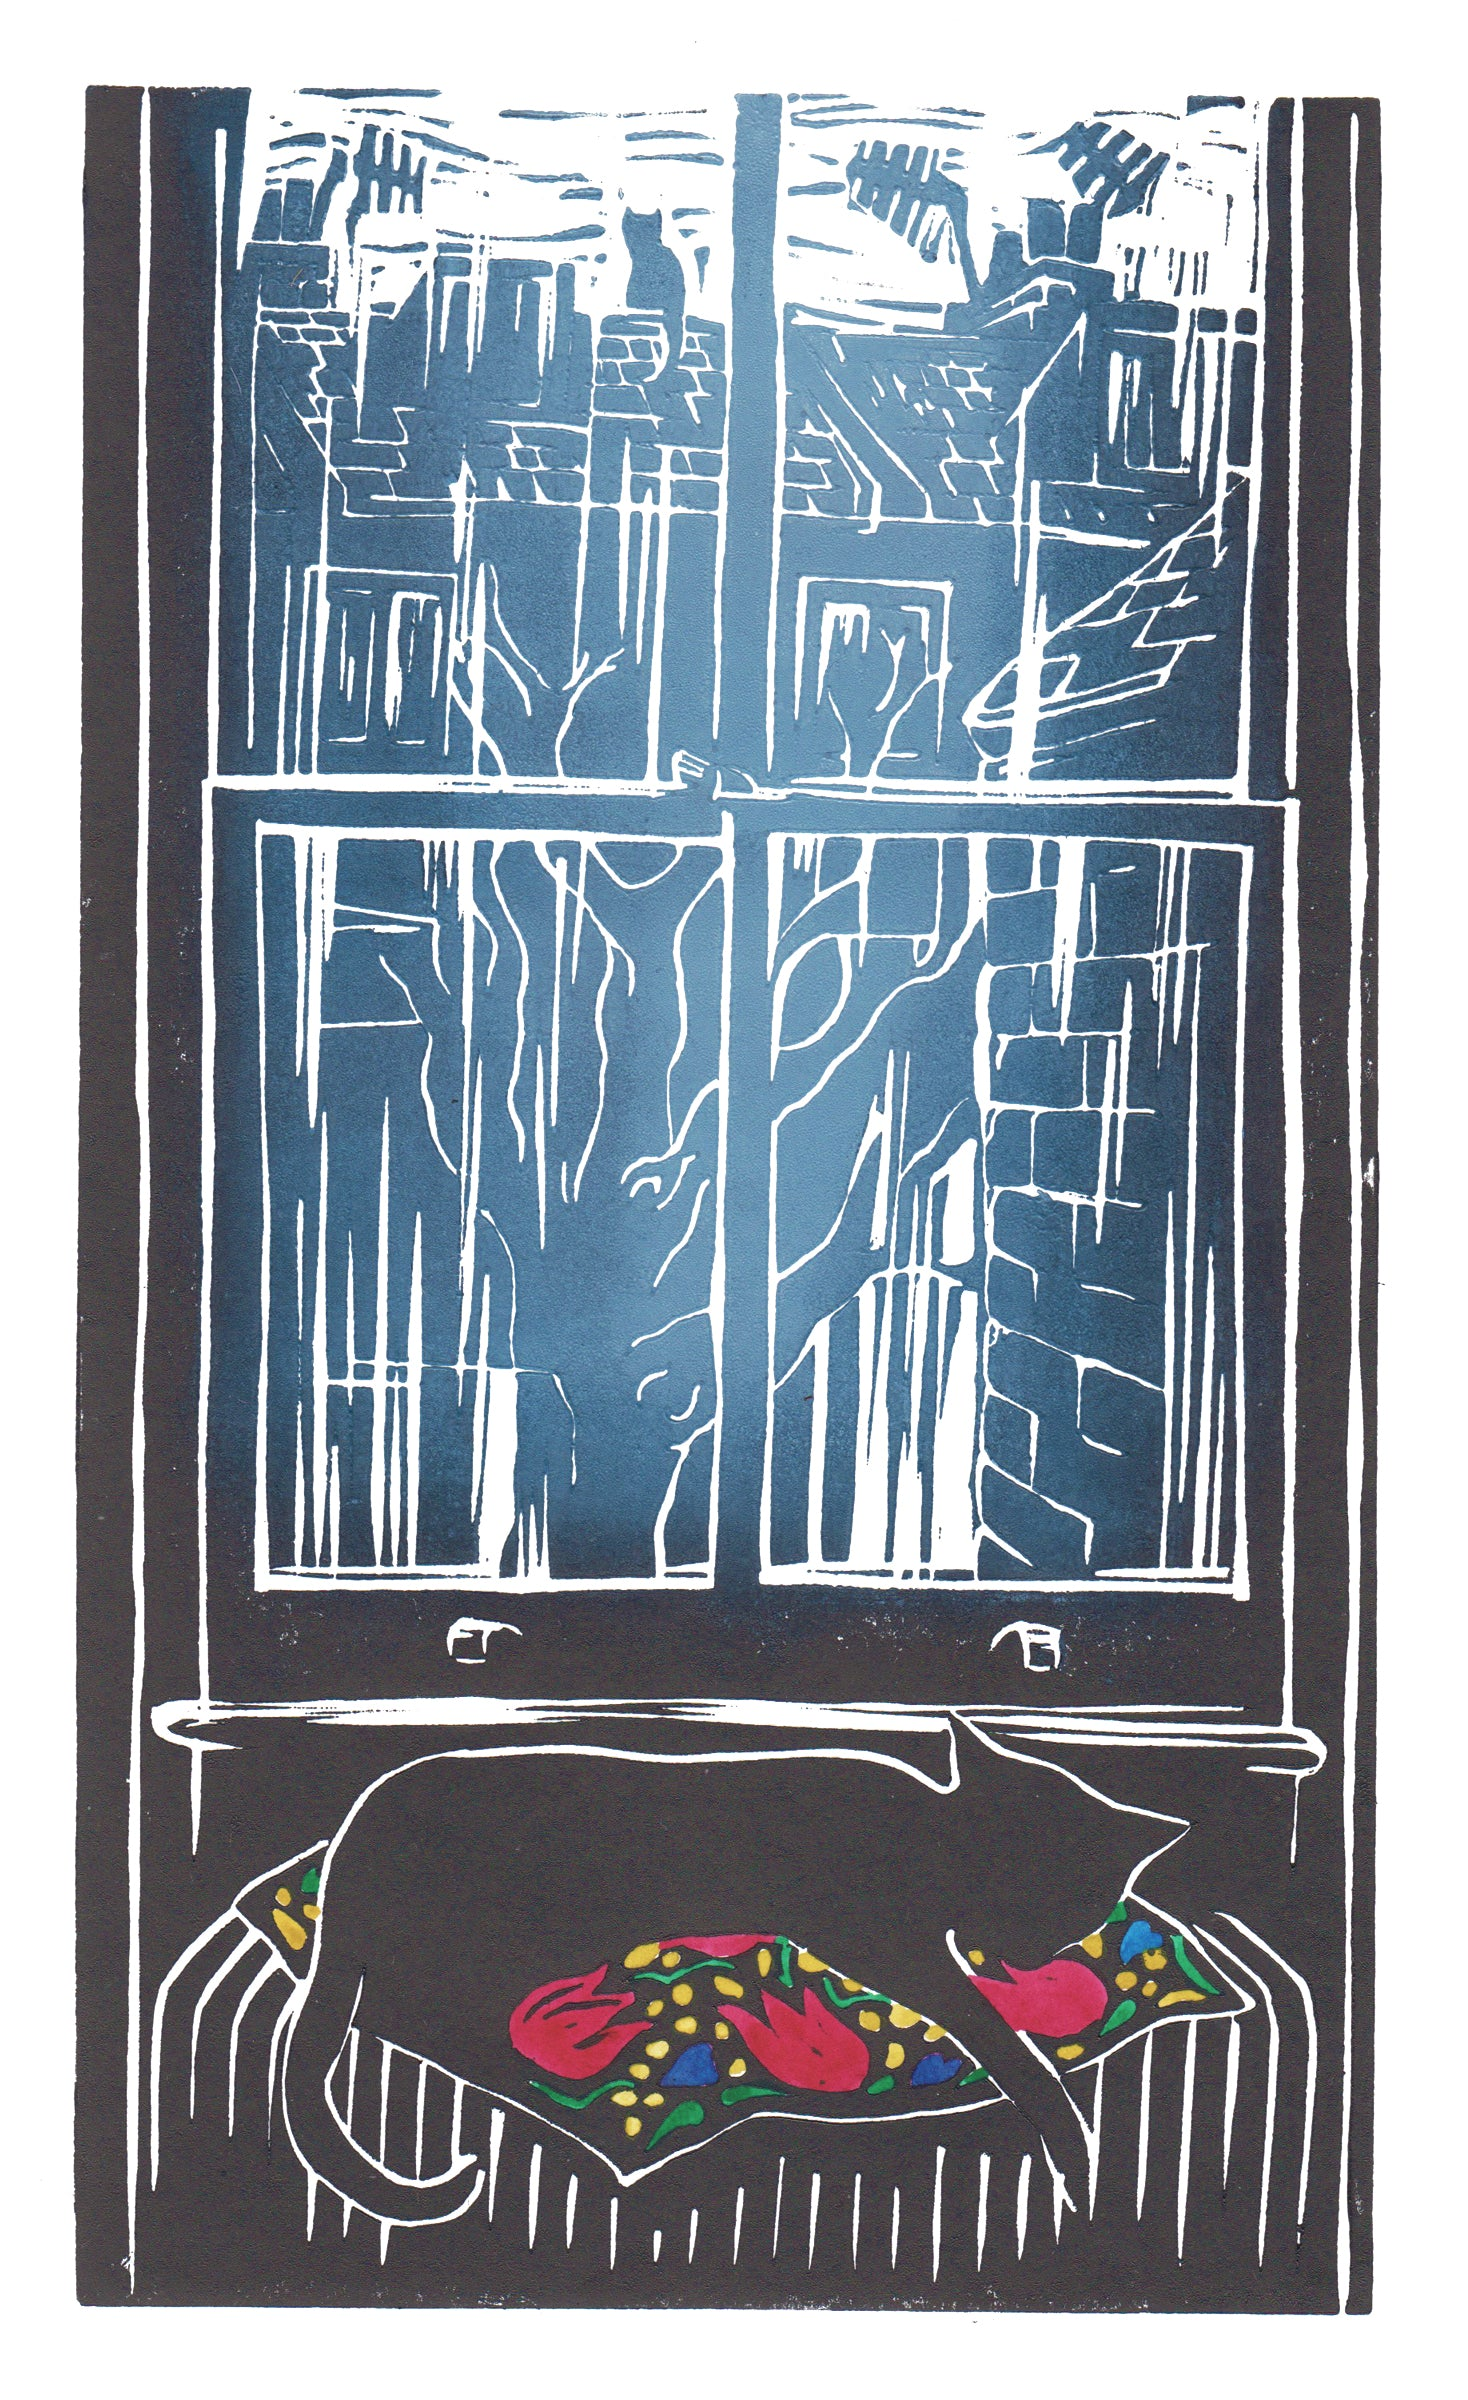 Lockdown Cat, linocut print of a black cat asleep on the radiator while his friend watches from the rooftops of London